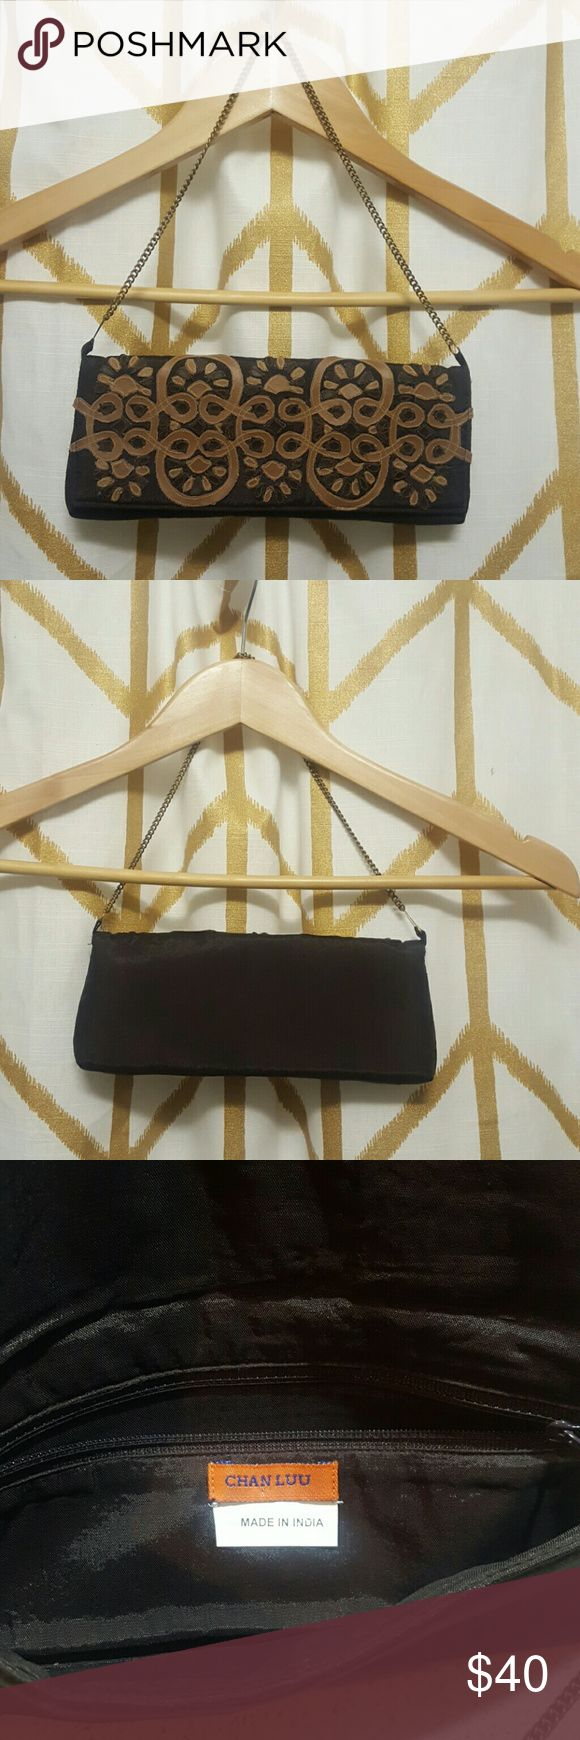 Chan Luu Baguette Canvas baguette with leather details.  Chain strap. Chan Luu Bags Clutches & Wristlets